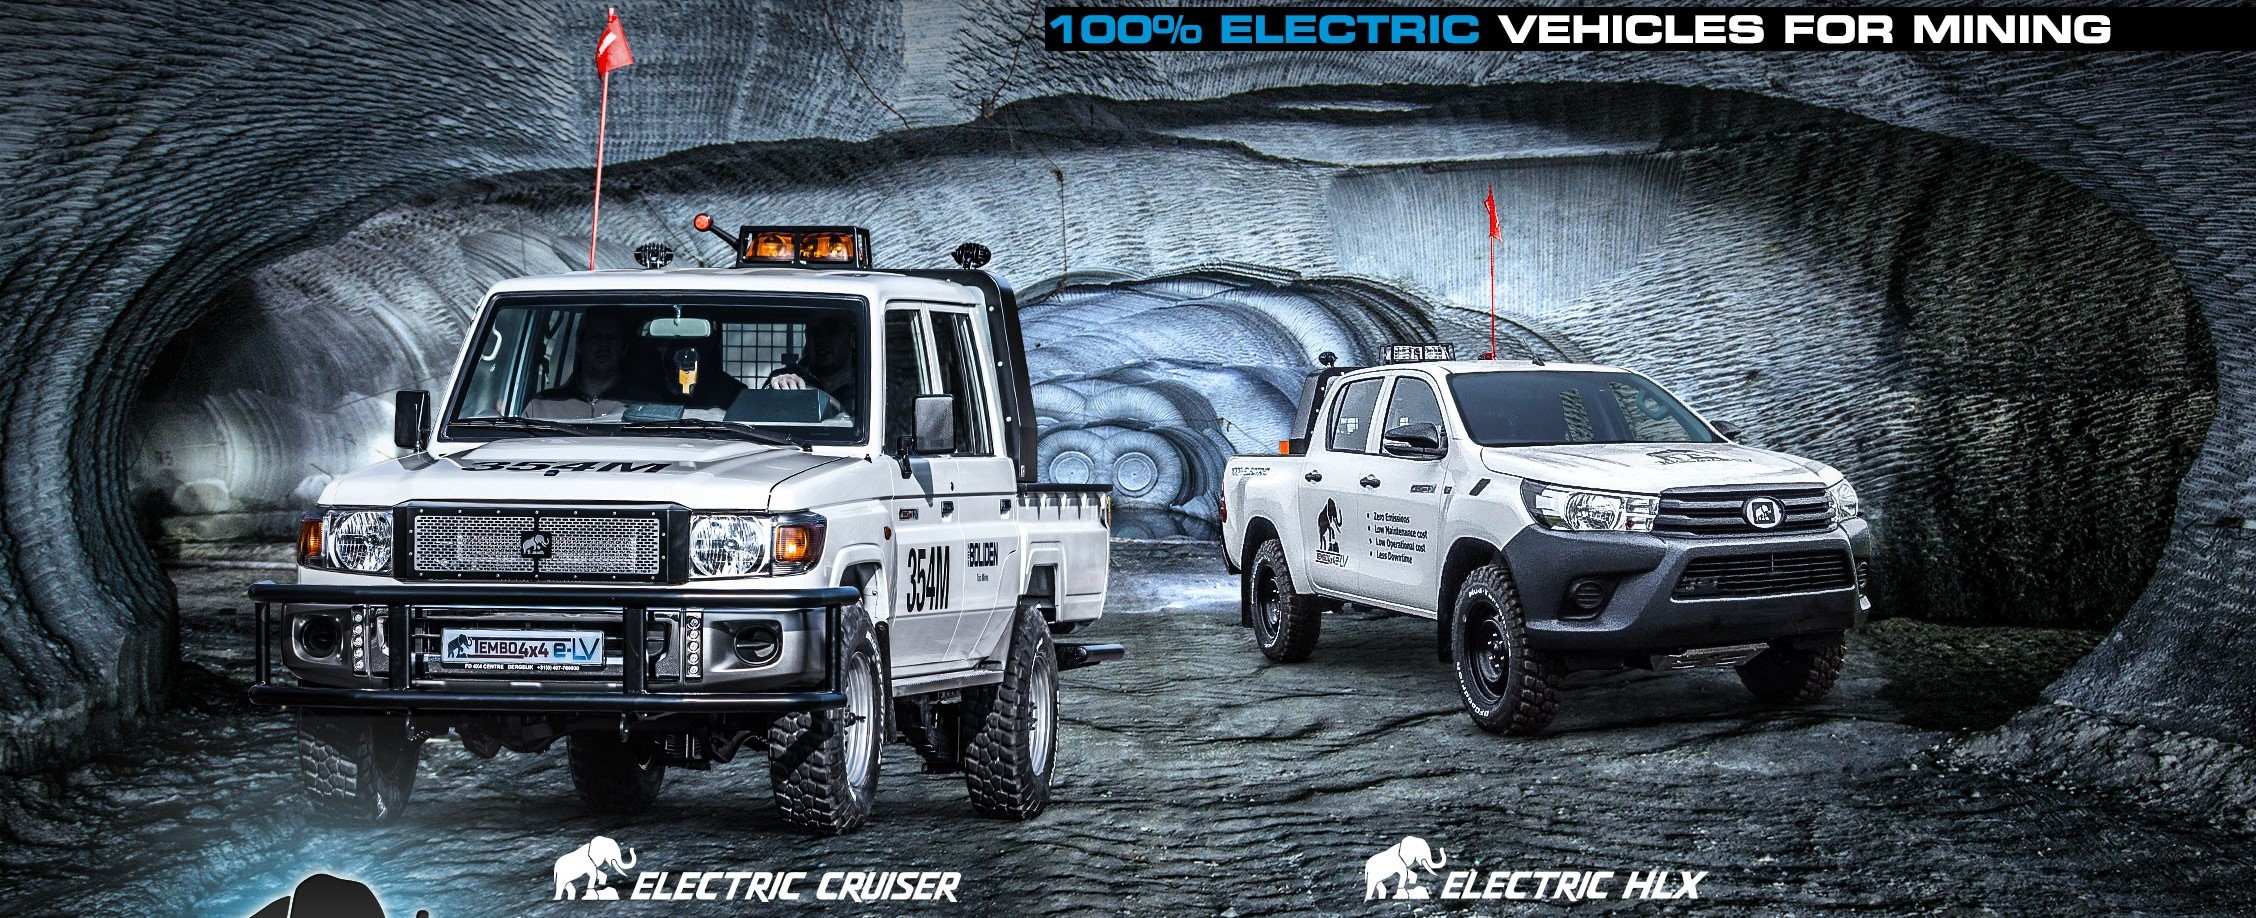 Tembo E Lv The New Standard In Mining Mobility Based On Toyota Land Cruiser Hilux Tembo E Lv Electric Cruiser Electric Hlx